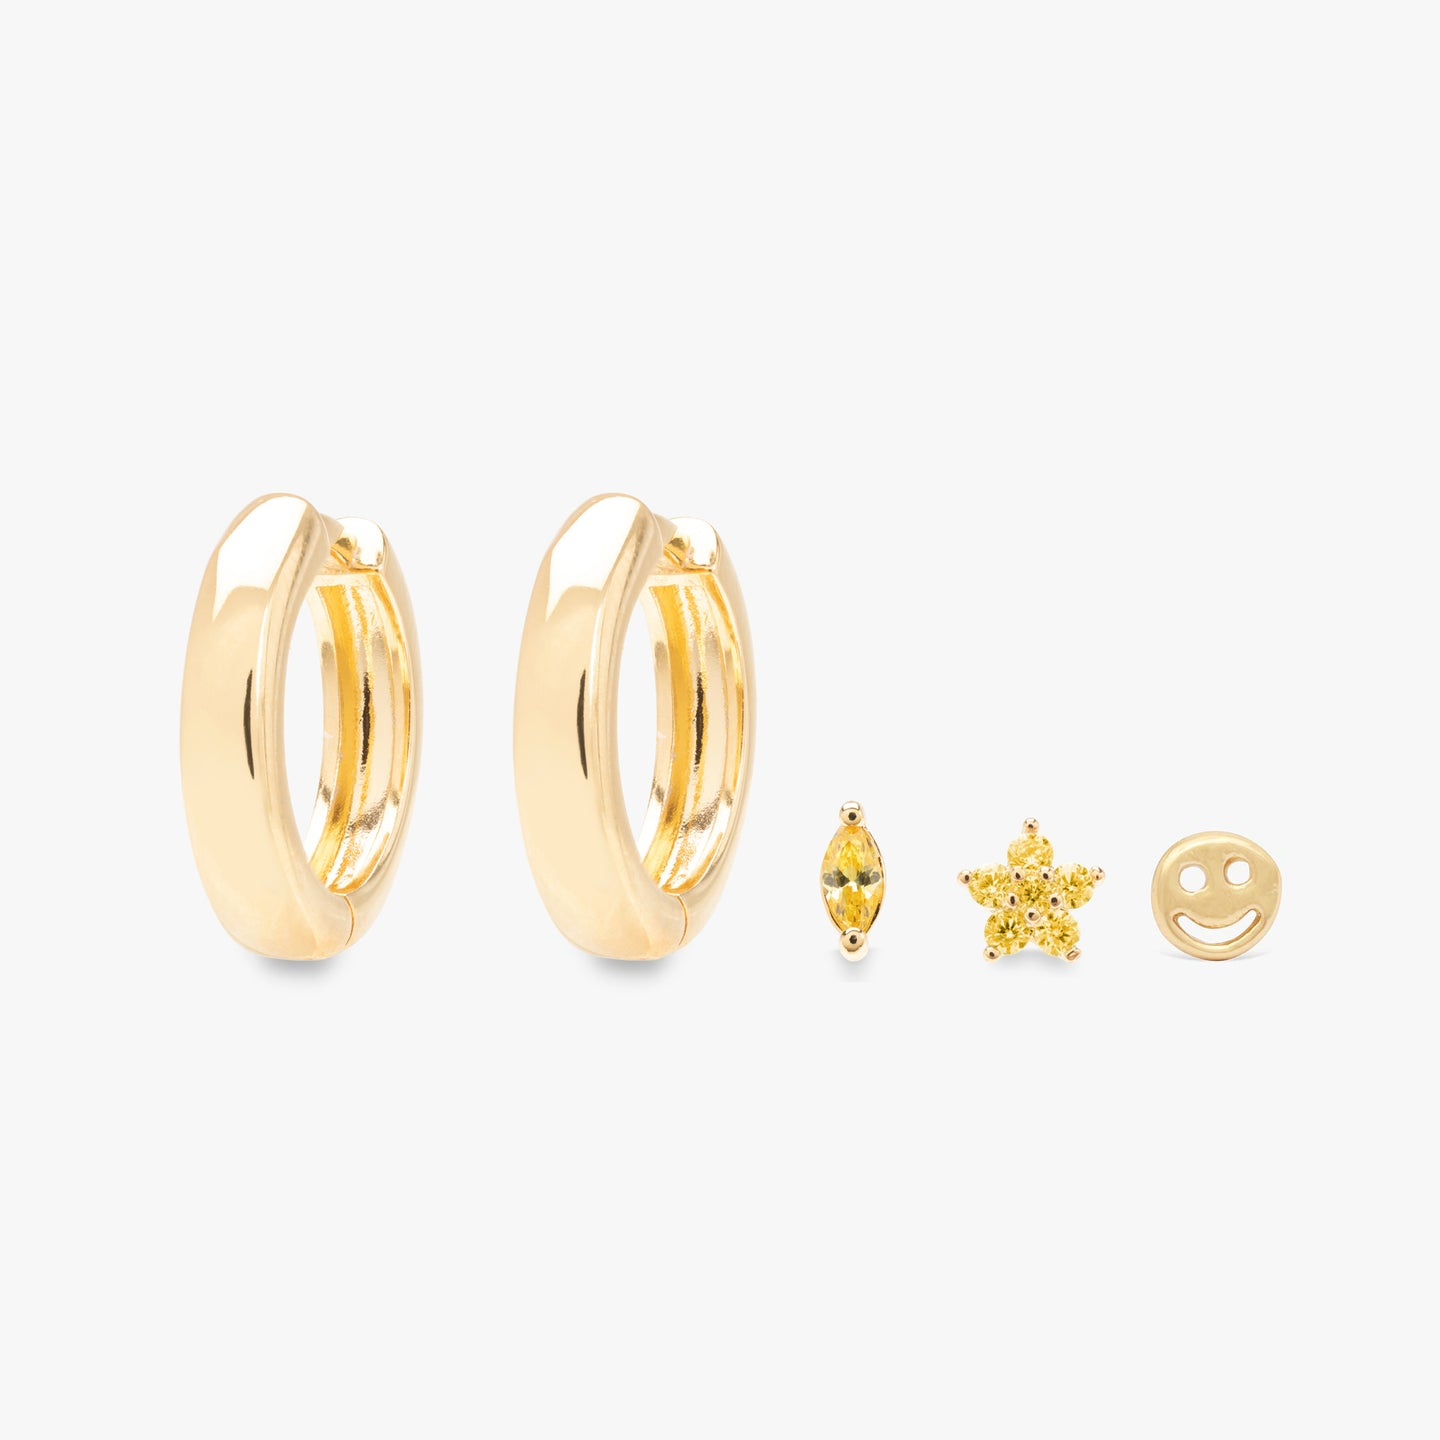 Two chunky gold hoops, one yellow CZ oblong shaped stud, one yellow CZ star stud, one gold smiley stud.